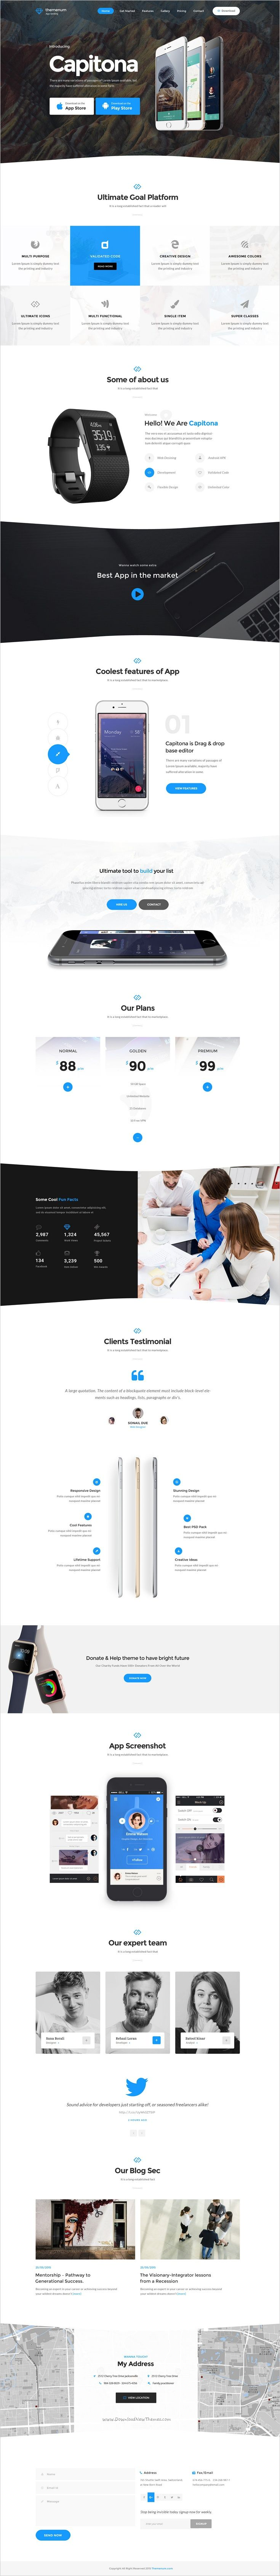 Themenum is a wonderful 6 in 1 #Bootstrap #landing page template for #app startups website download now➯ https://themeforest.net/item/themenum-multipurpose-app-showcase-responsive-html-template/17184042?ref=Datasata